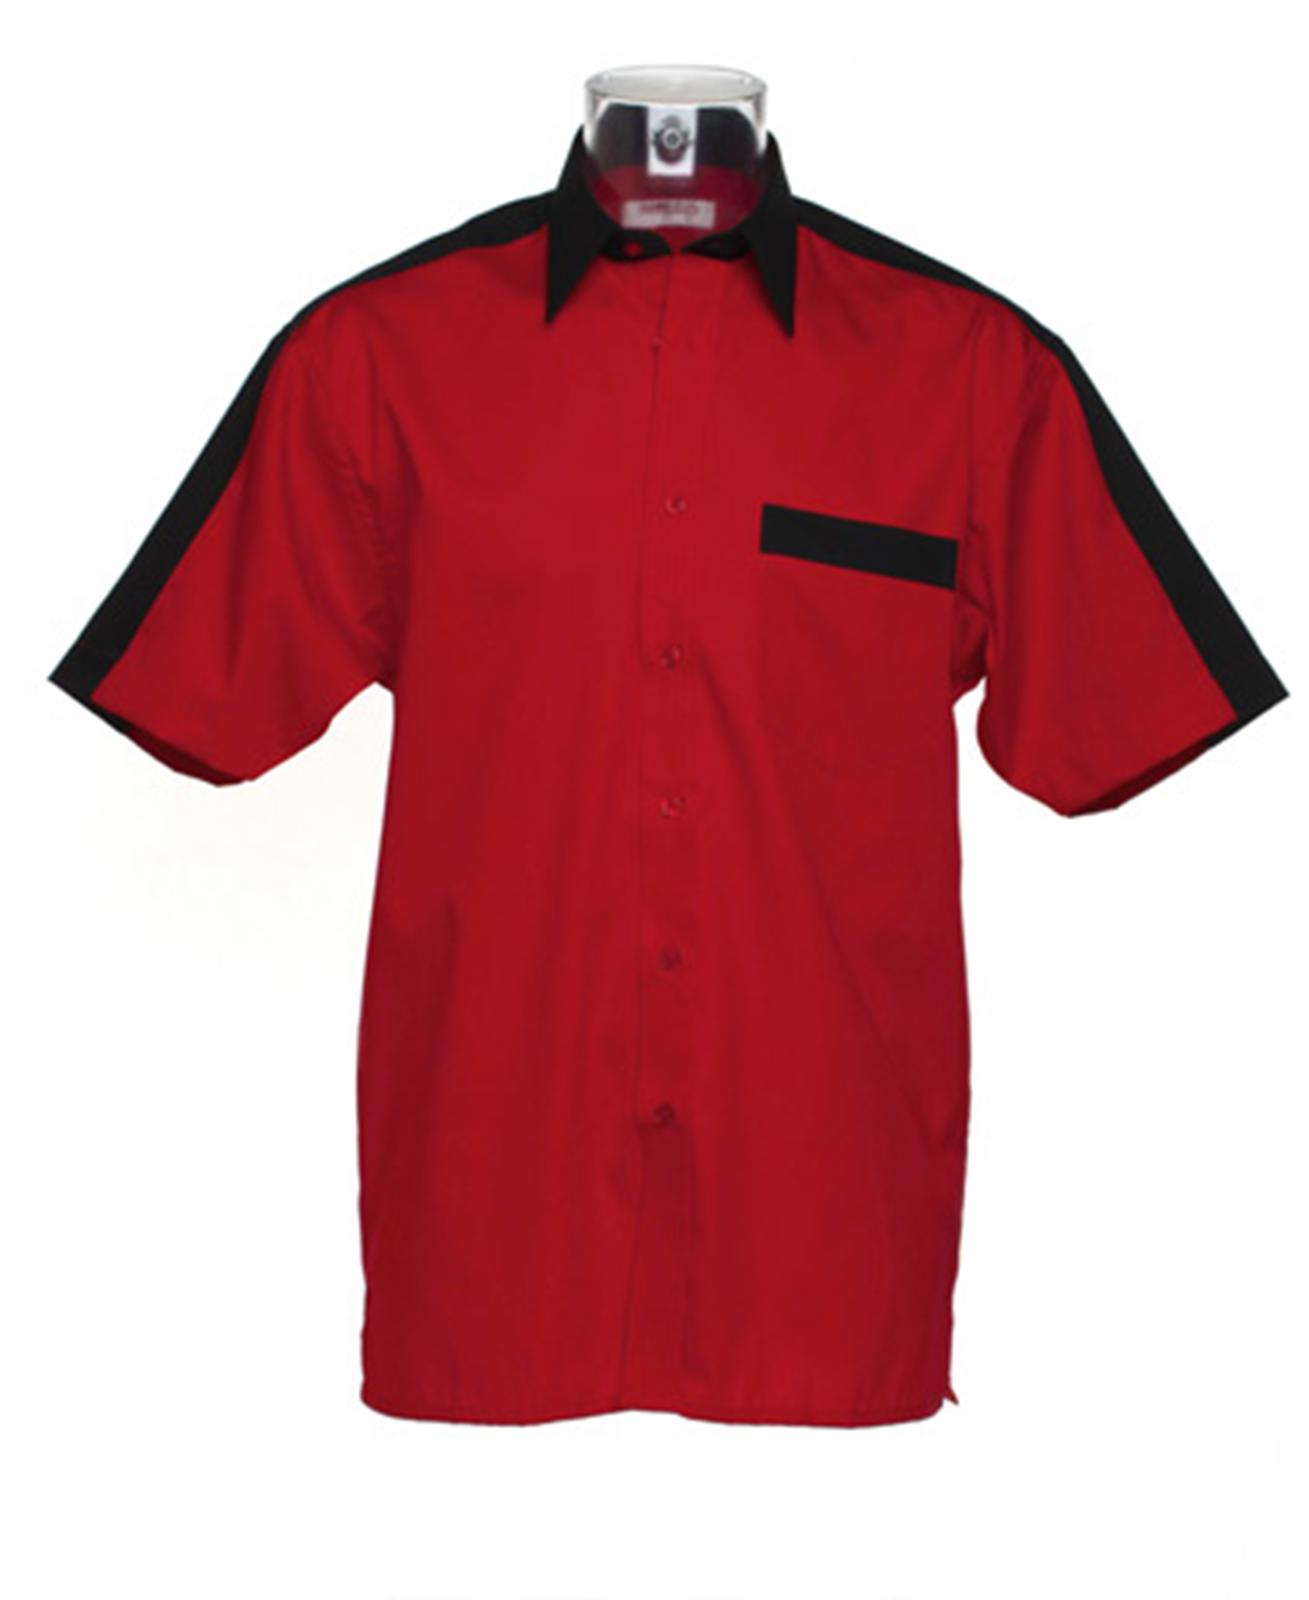 New GAMEGEAR Mens Sports Team Darts Short Sleeve Shirt in 5 Colours XS - 3XL